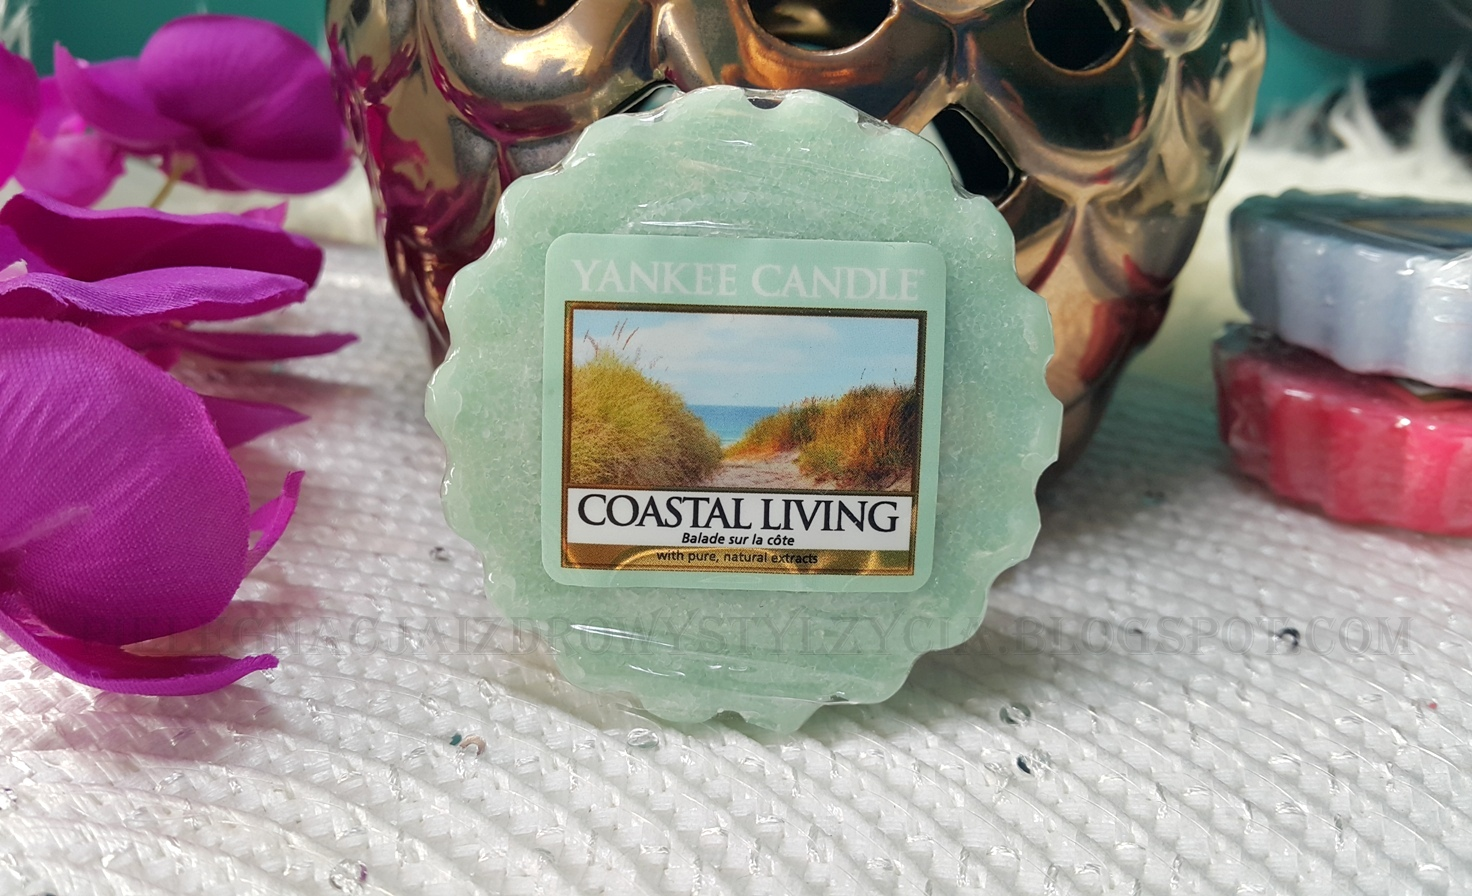 Wosk Coastal Living Yankee Candle. Blog, opinie.